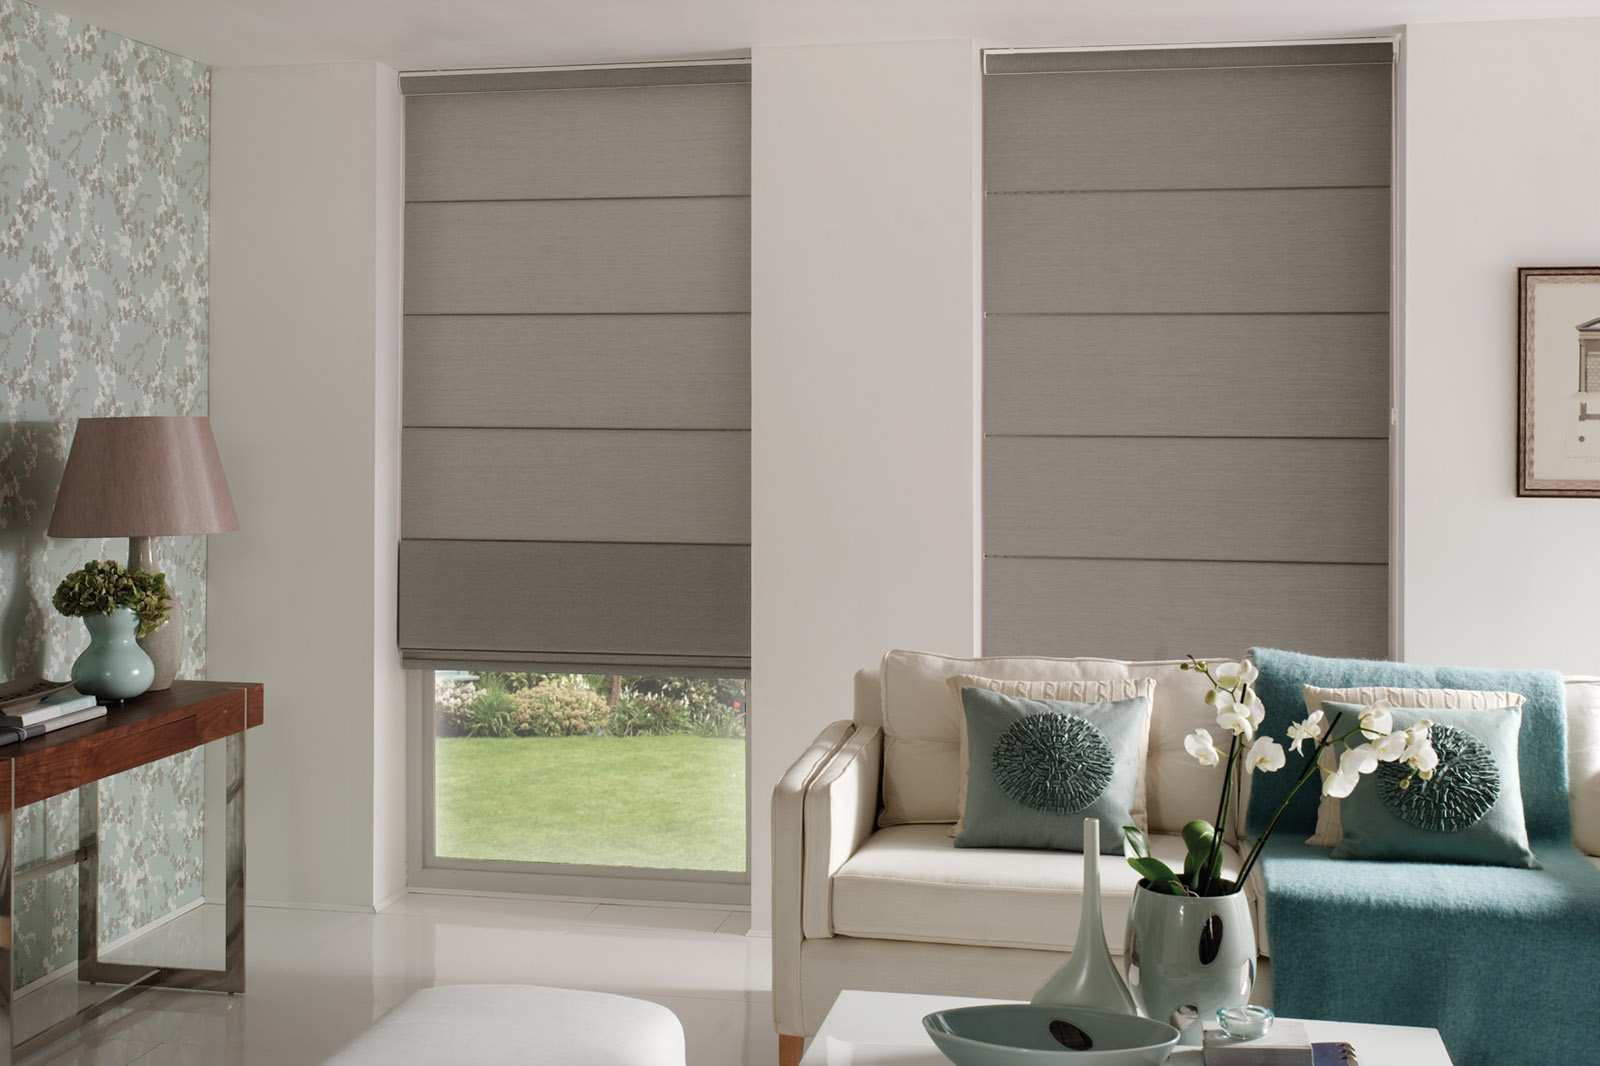 Blindswholesale Home Regarding Long Roman Blinds (Image 1 of 15)